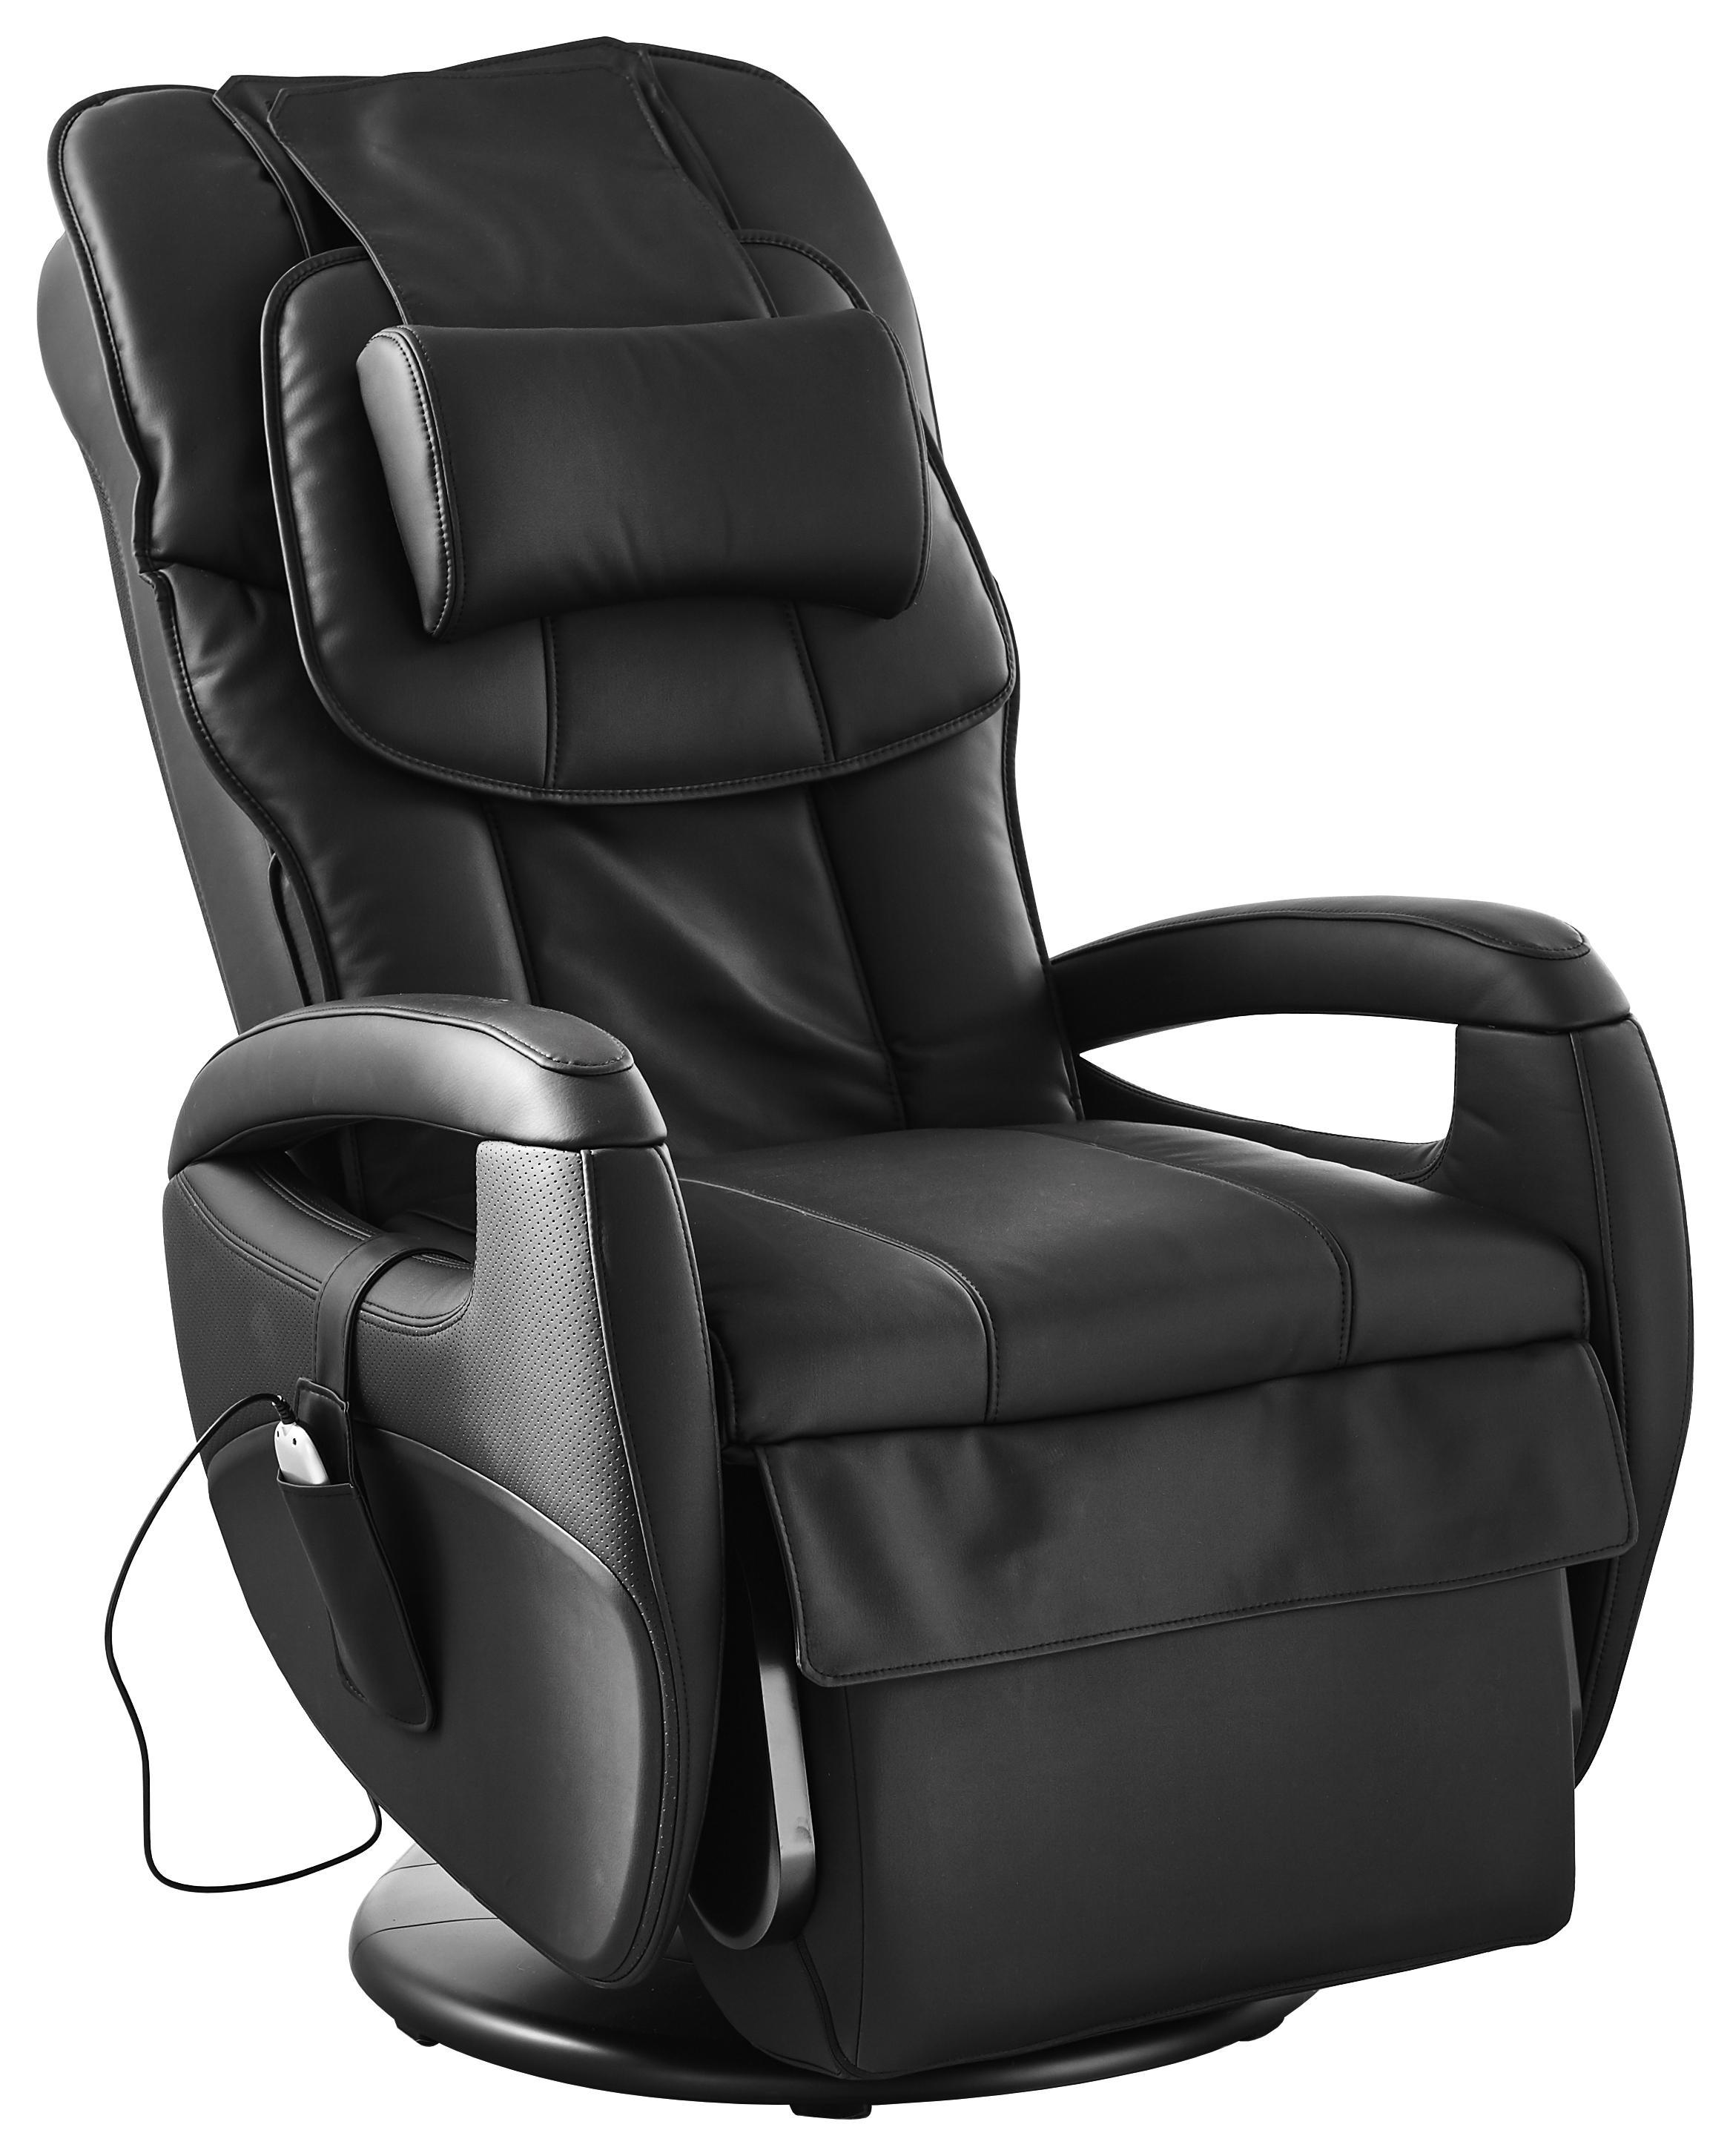 Massagesessel Design Massagesessel Online Kaufen Xxxlutz